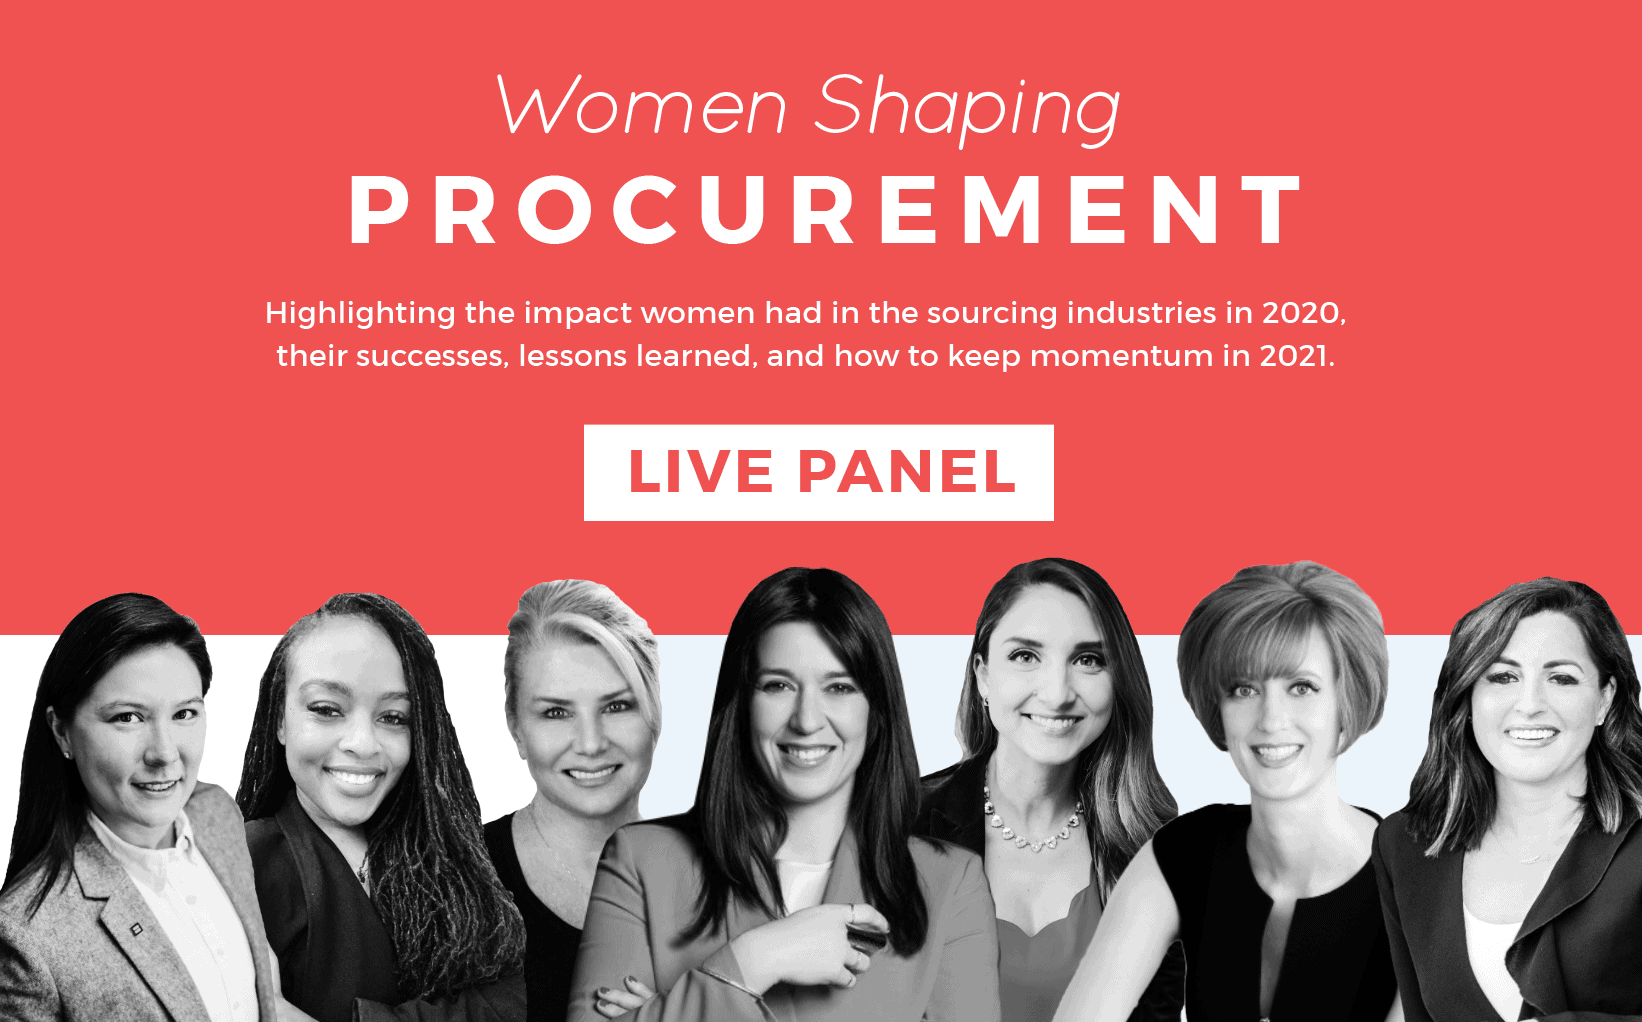 Women Shaping Procurement Live Series